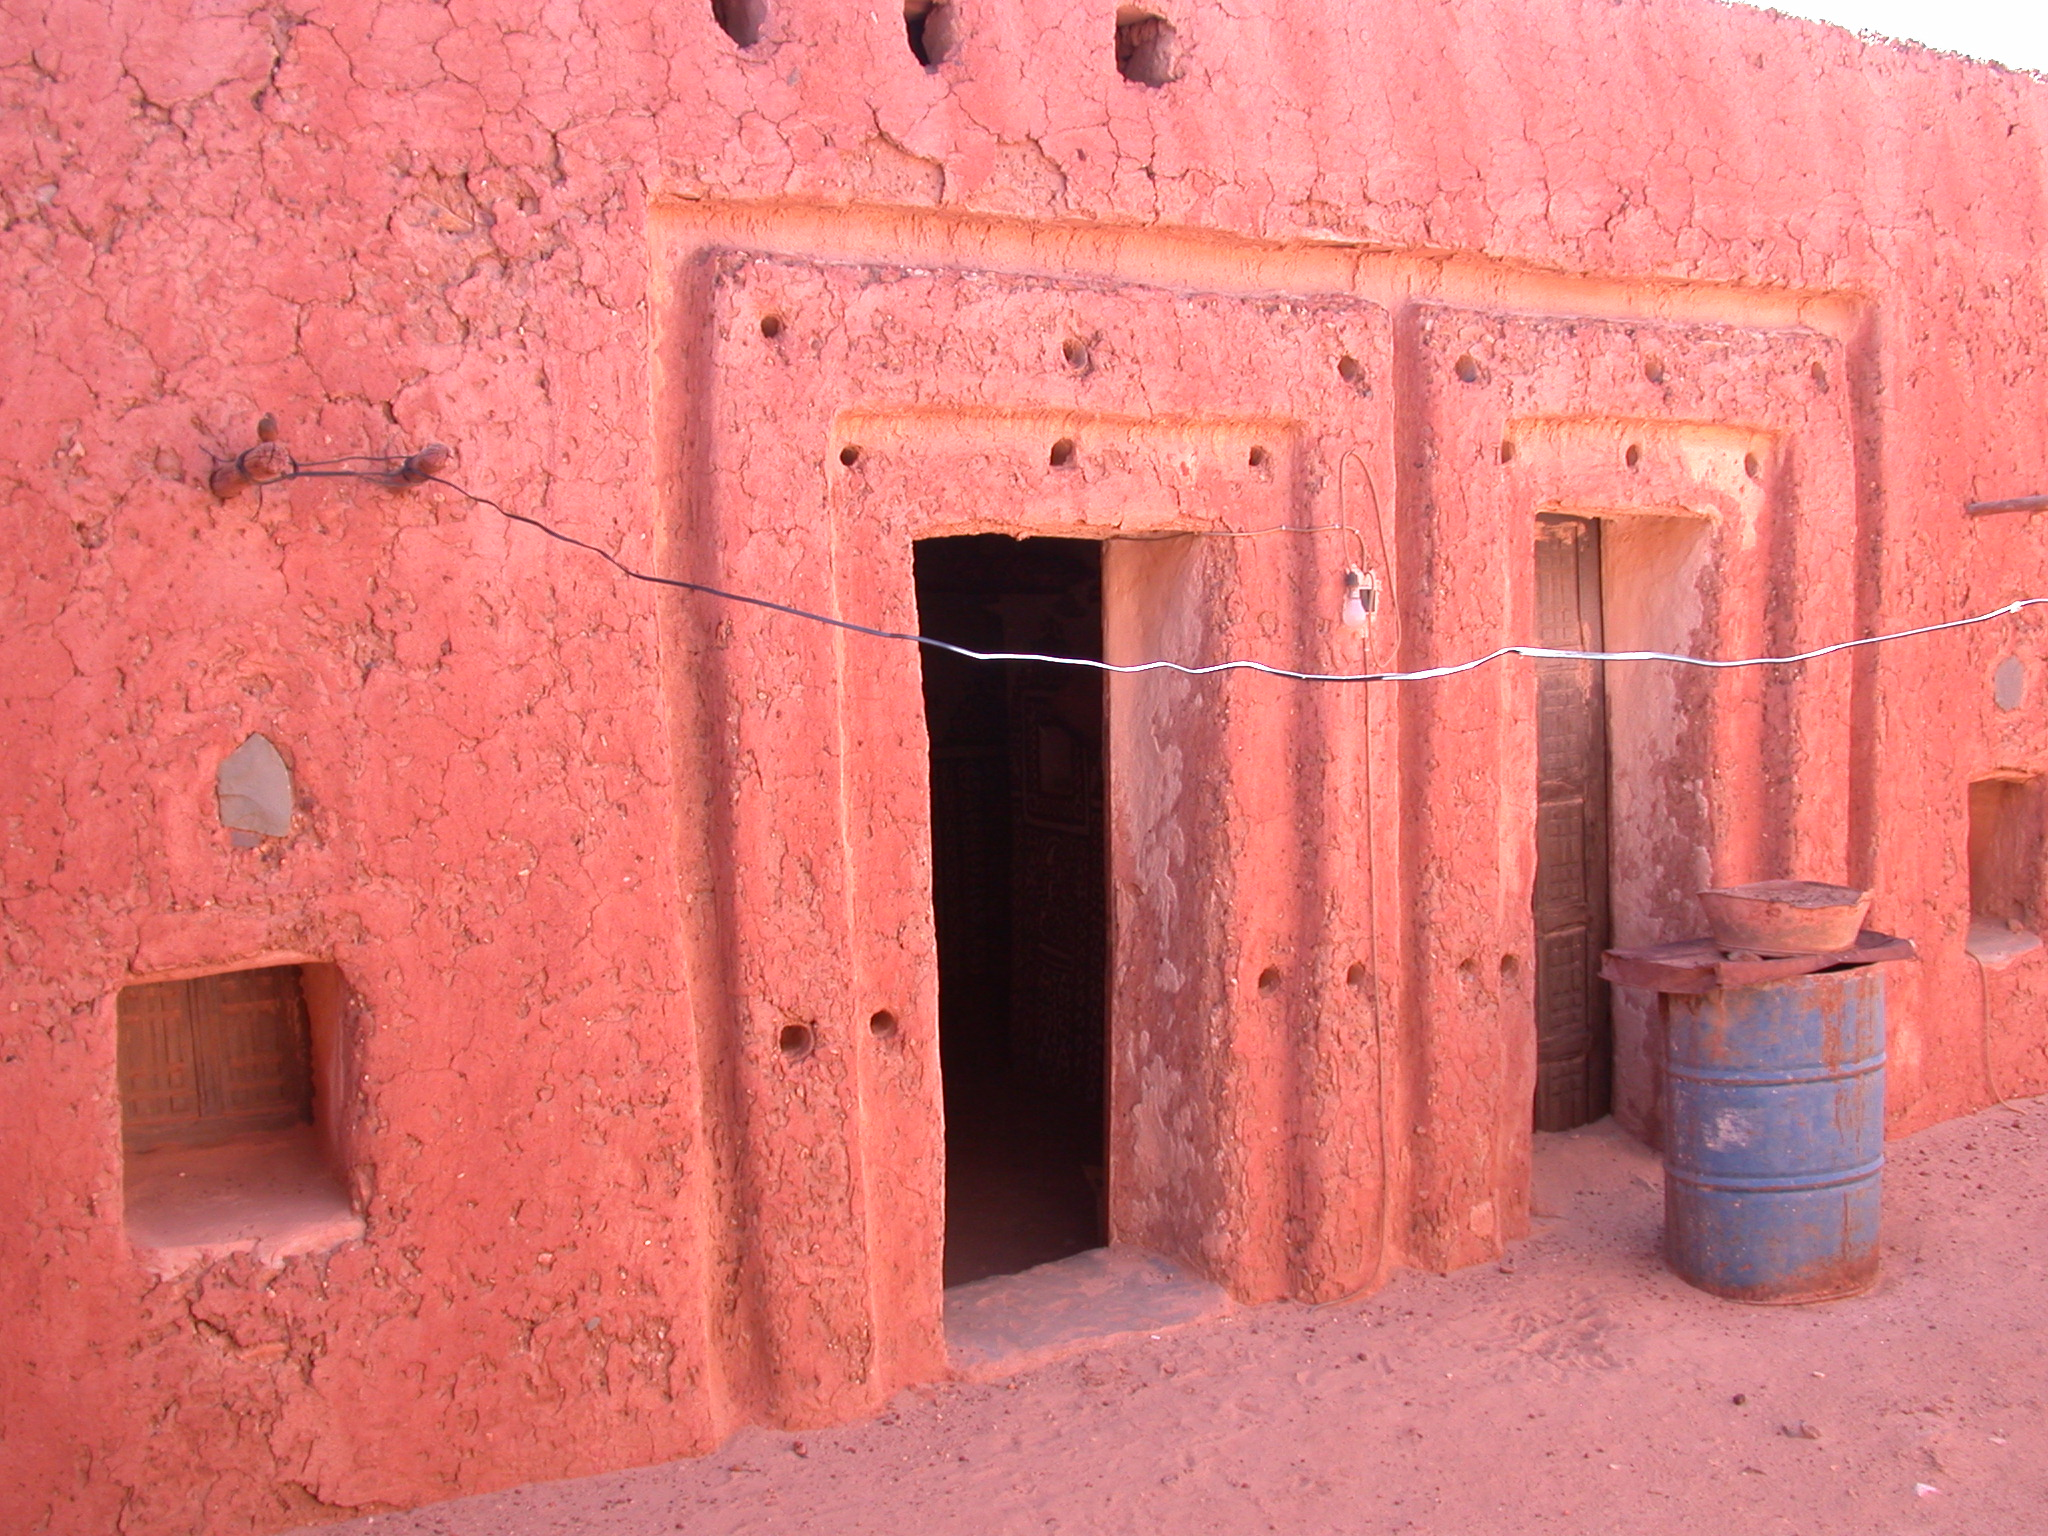 Interior Doorway of Library in Ancient City of Oulata, Mauritania